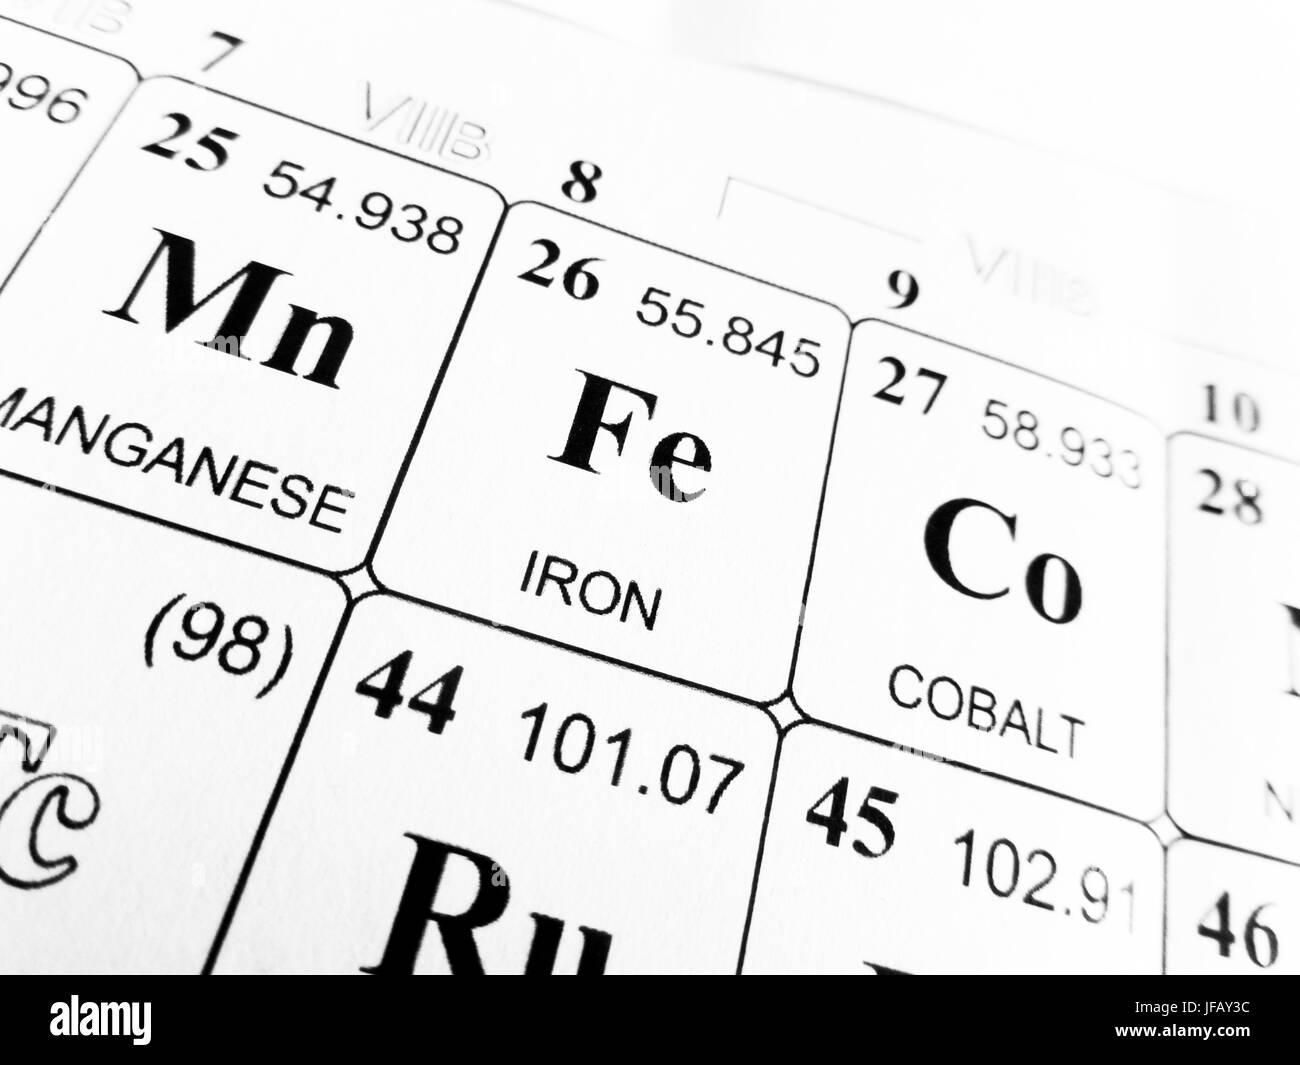 Iron on the periodic table of the elements stock photo royalty iron on the periodic table of the elements gamestrikefo Gallery